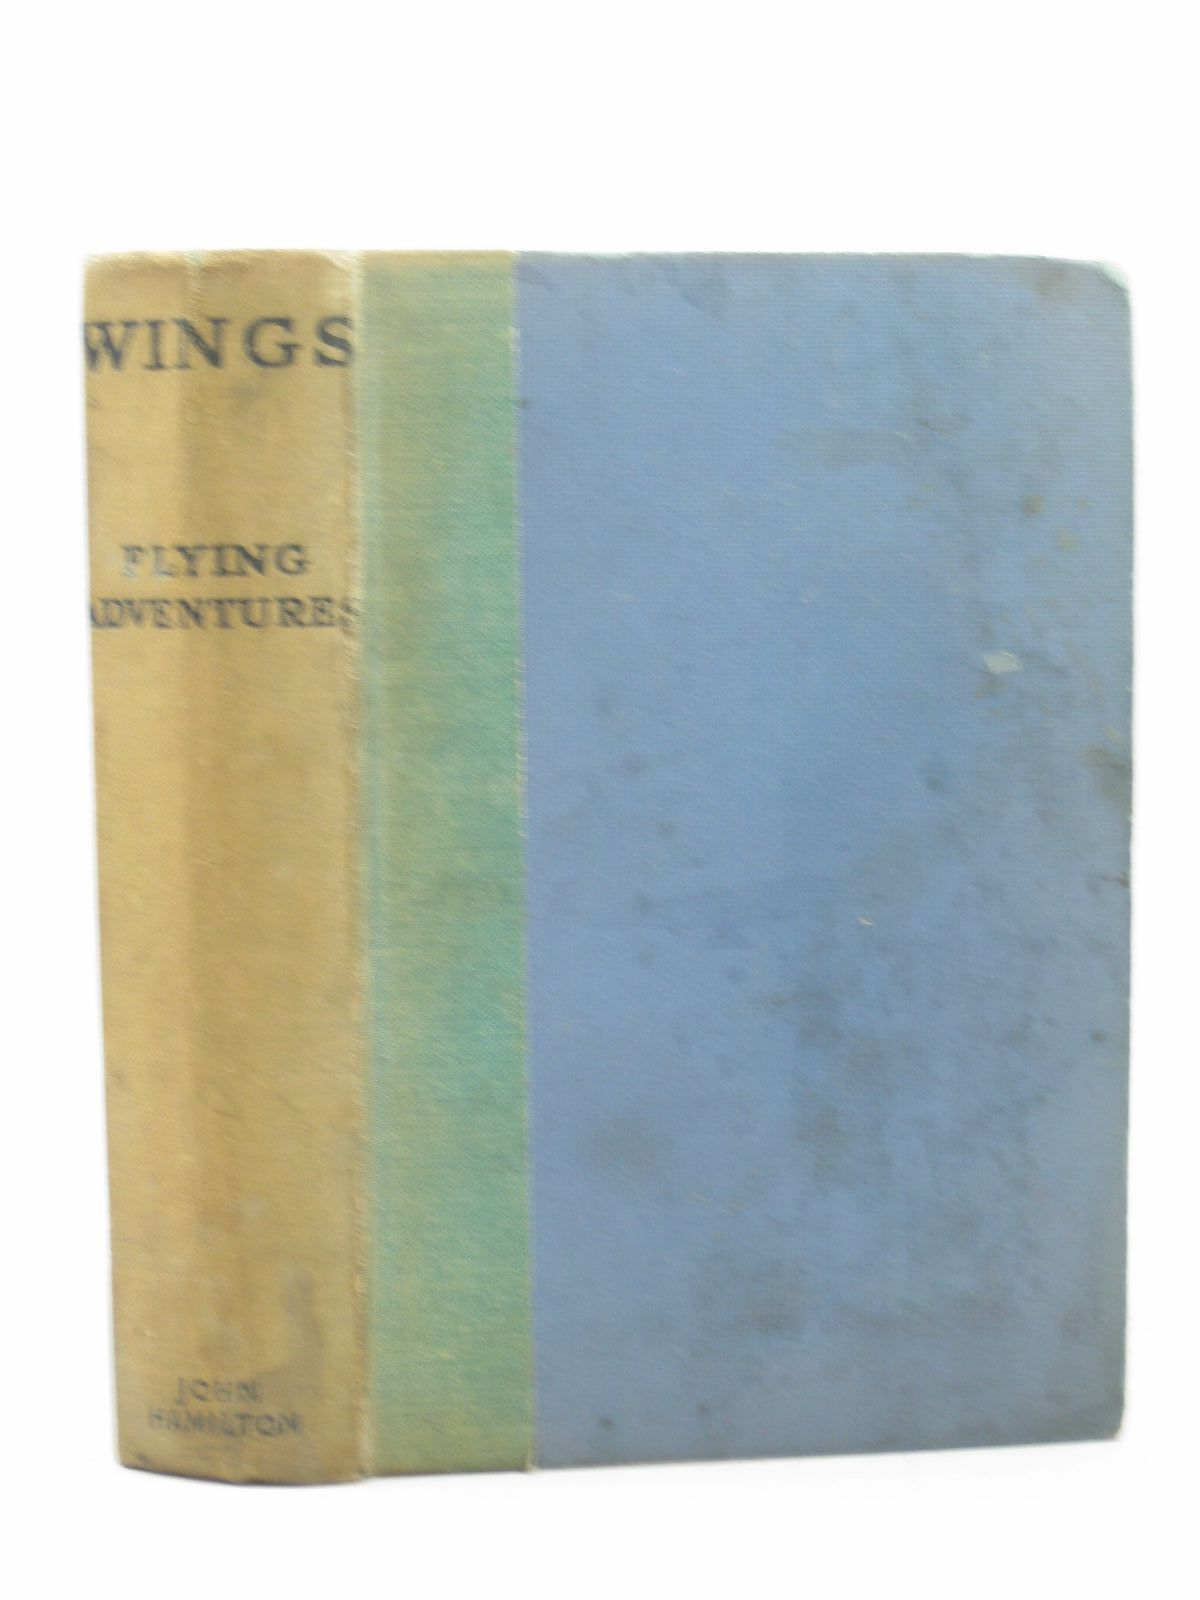 Photo of WINGS A BOOK OF FLYING ADVENTURES written by Johns, W.E. illustrated by Johns, W.E. published by John Hamilton Ltd. (STOCK CODE: 1312960)  for sale by Stella & Rose's Books